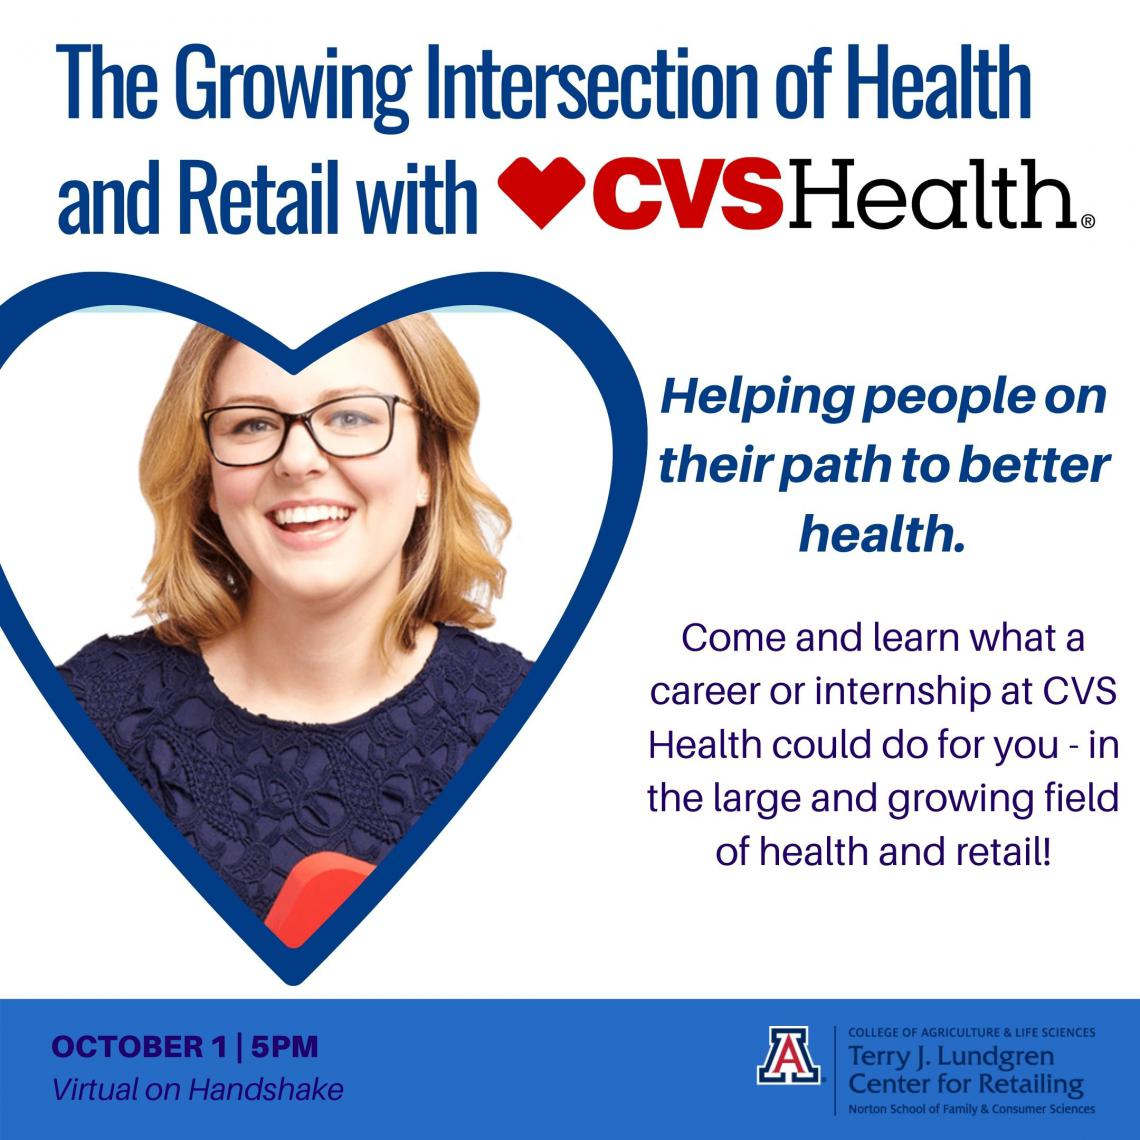 The Growing Intersection of Health and Retail with CVS Health flyer